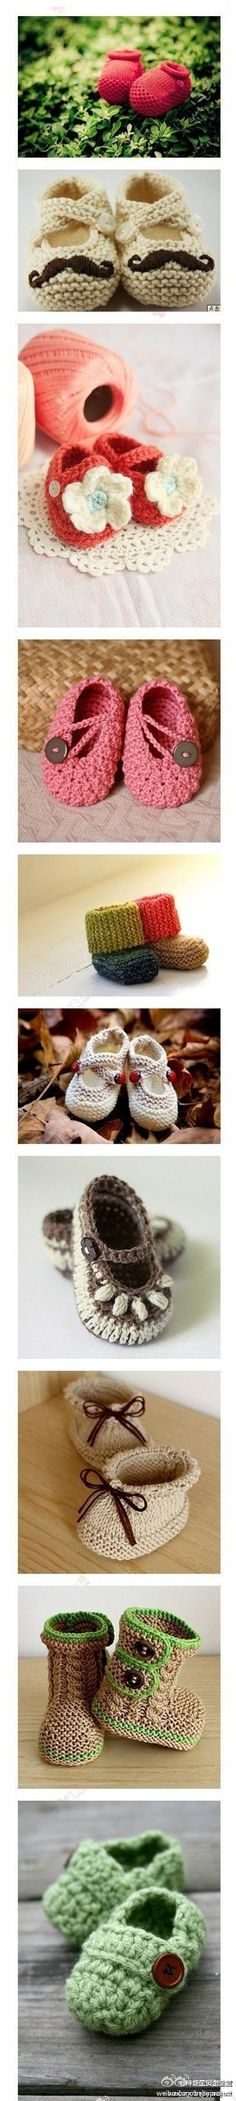 so cute! I may have to make some of these